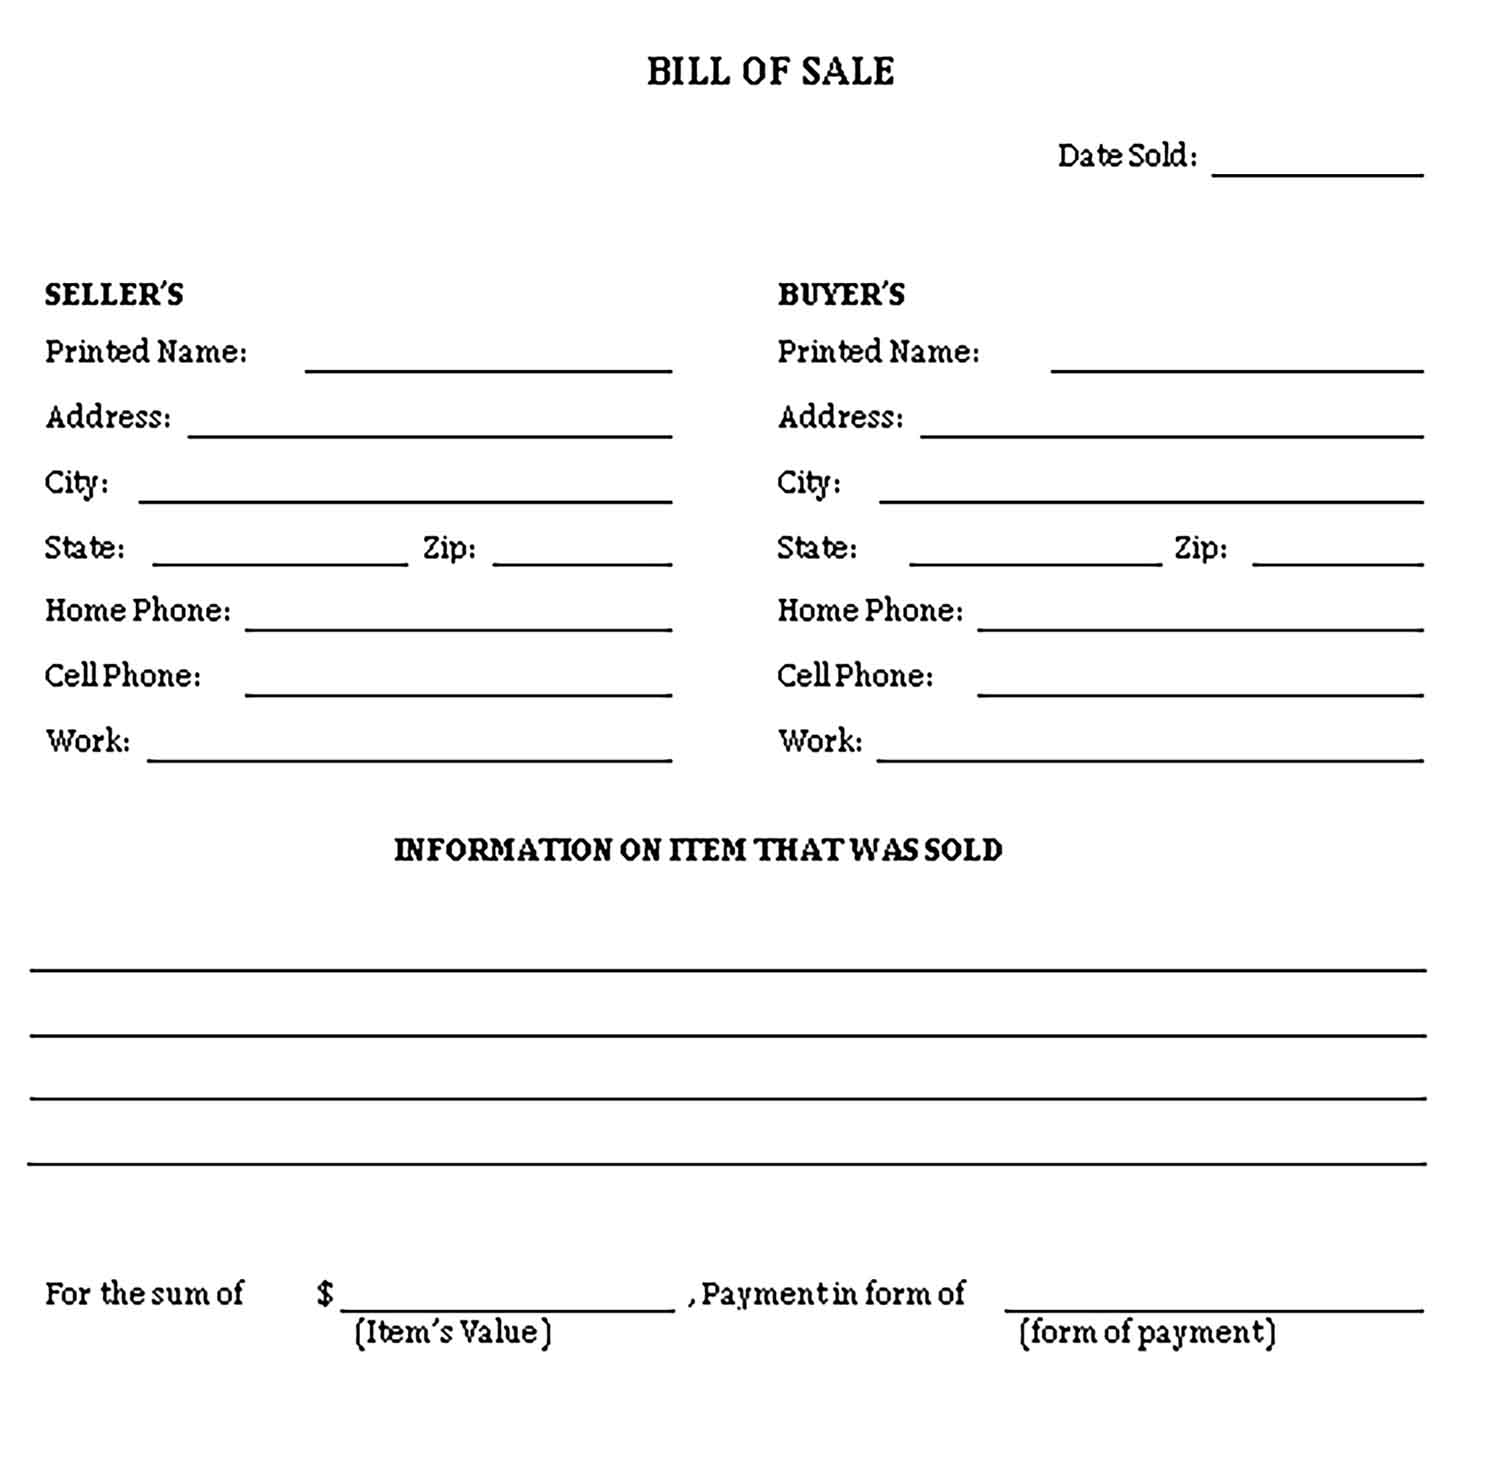 Sample general bill of sale form Templates 1